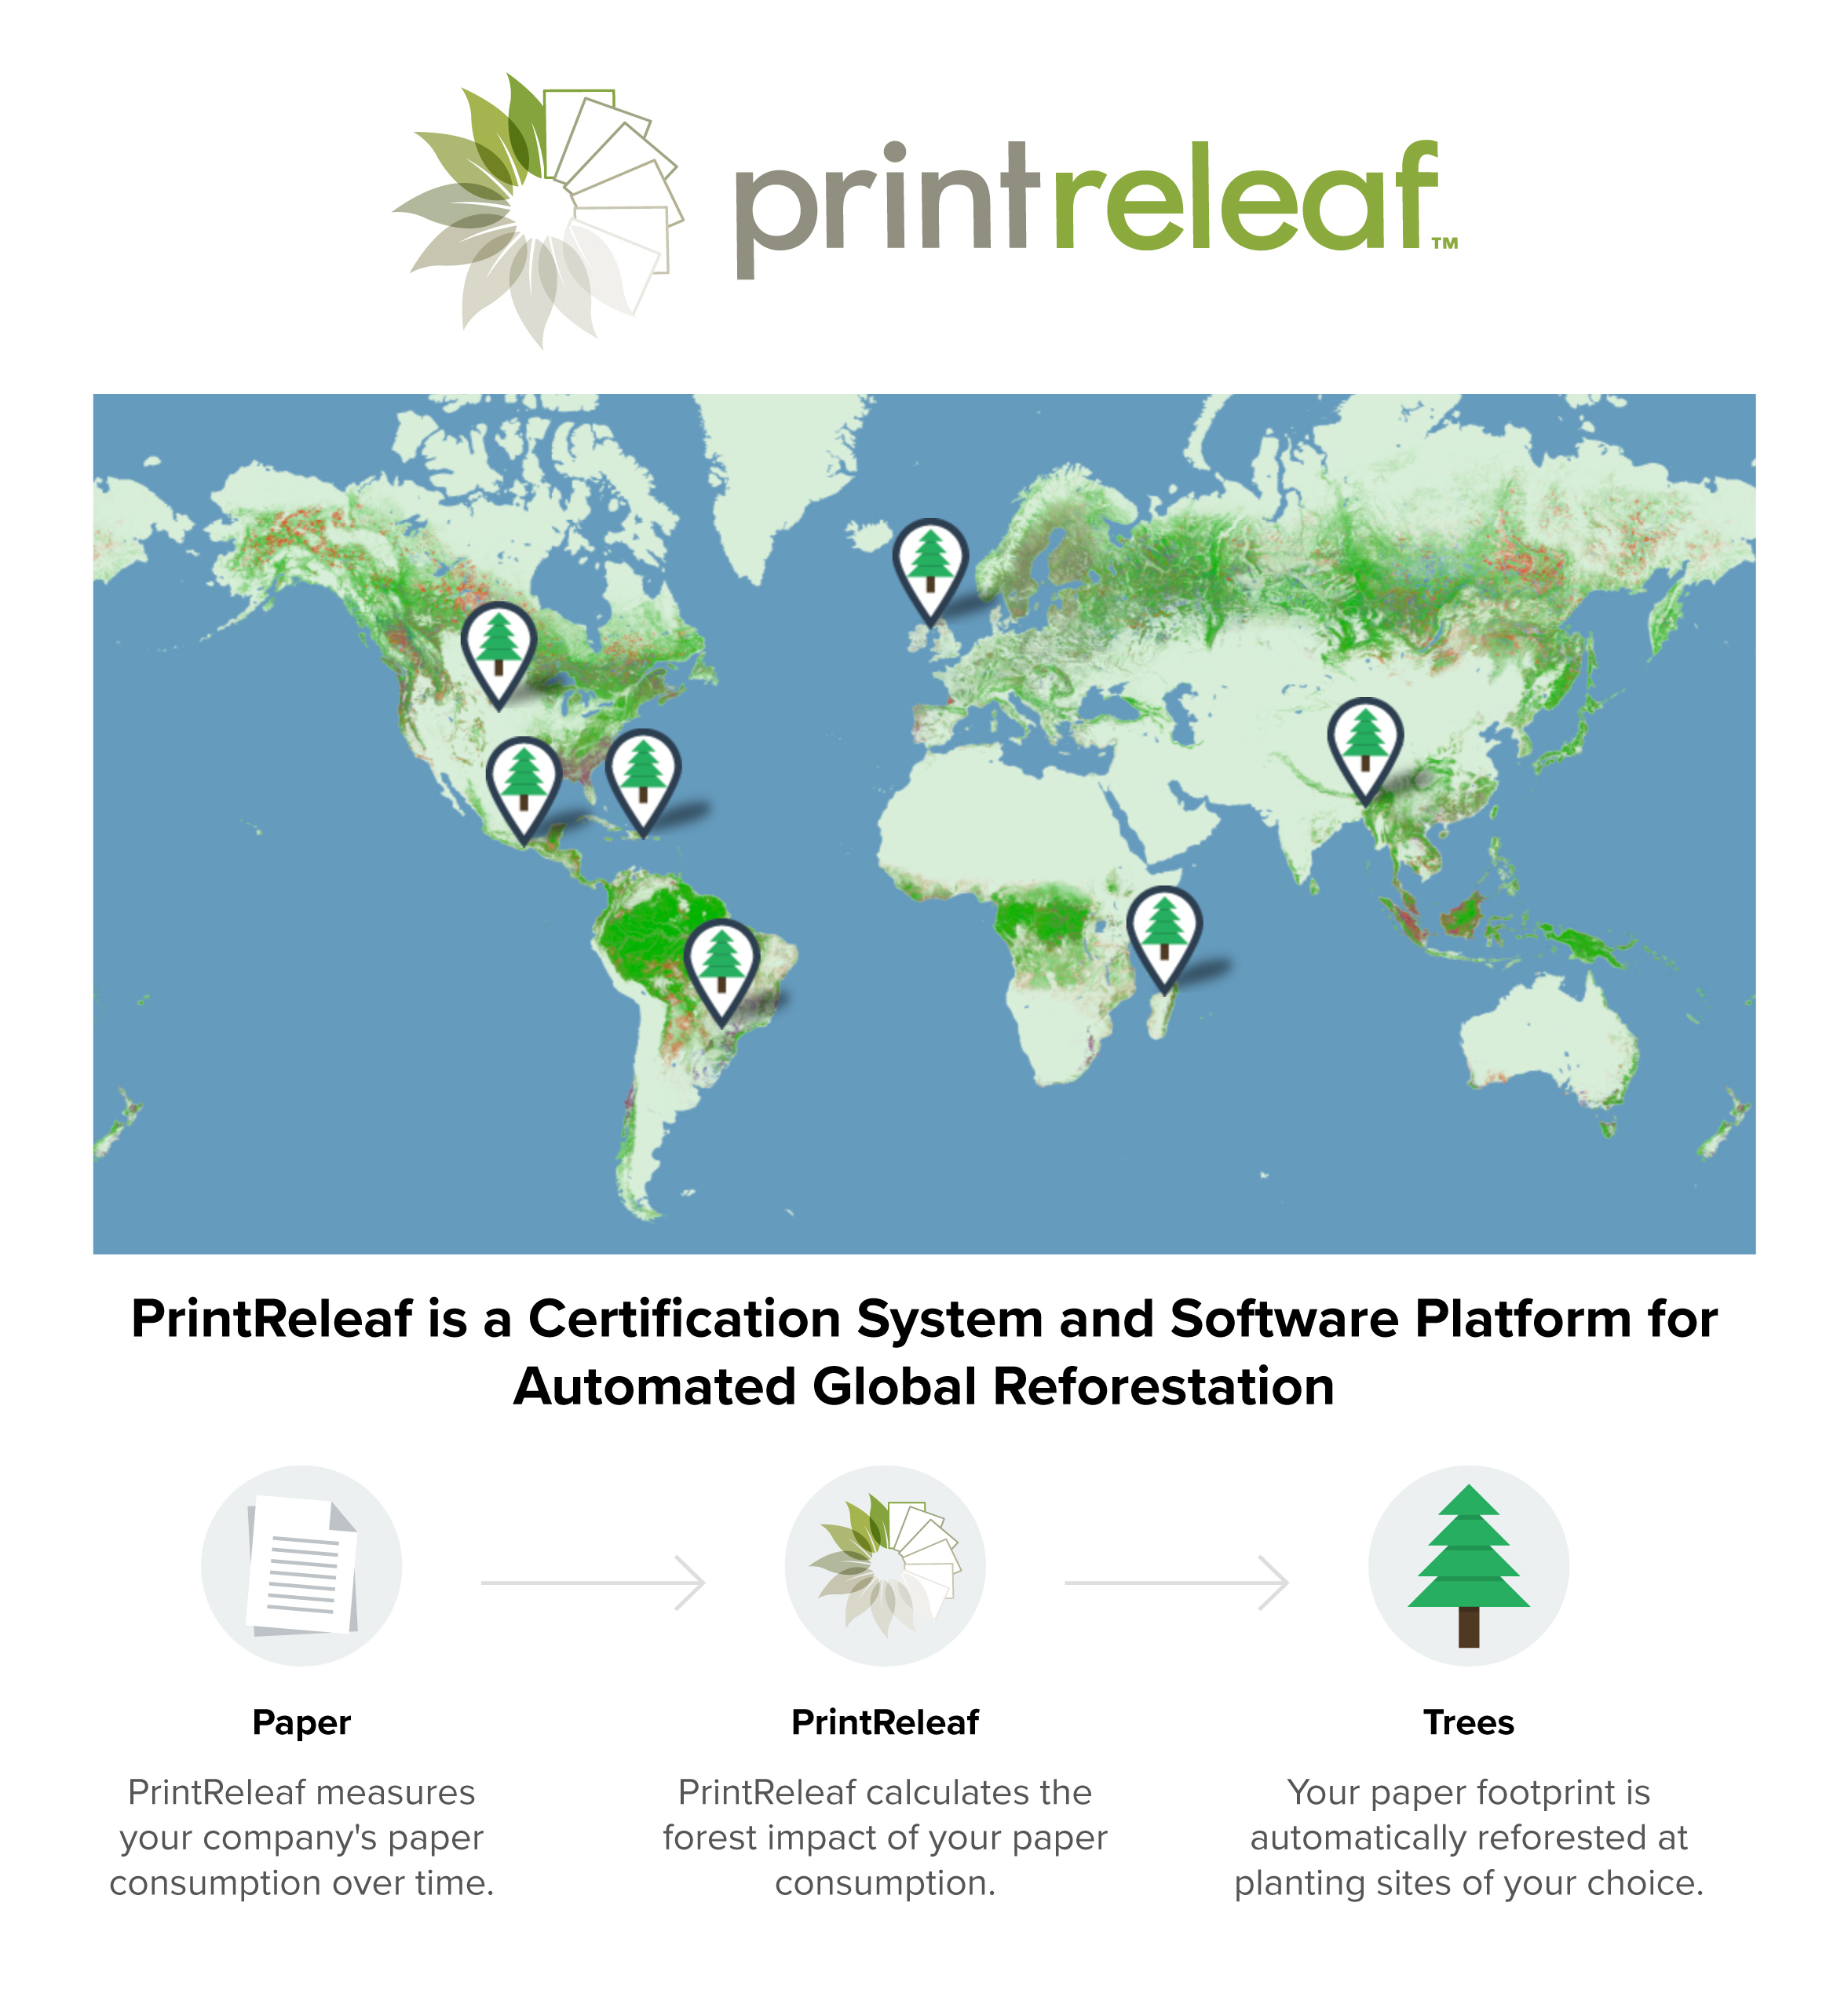 PrintReleaf is a certification system and software platform for Automated Global Reforestation.